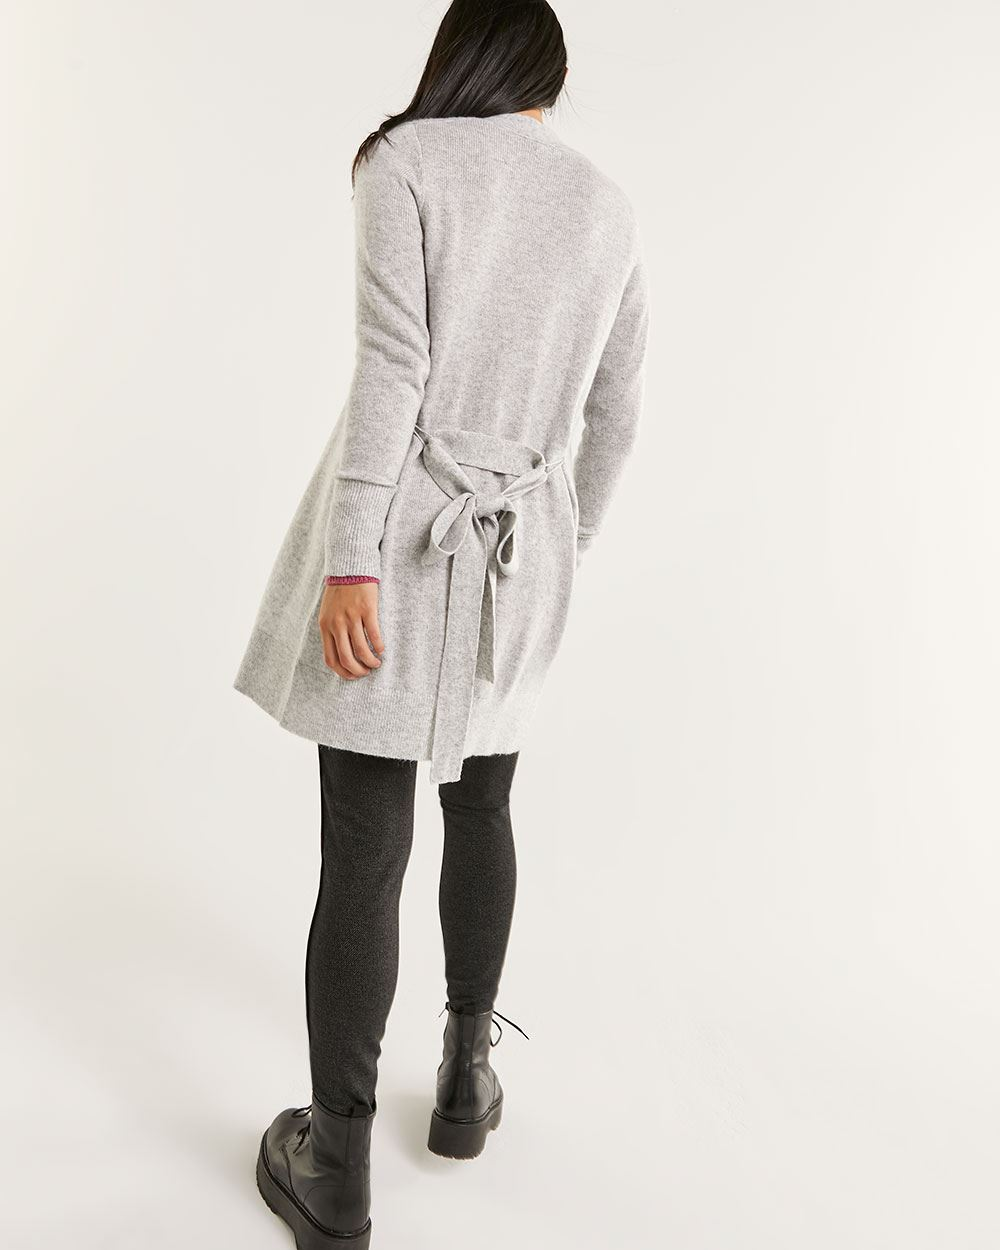 Long Sleeve Cashmere Blend Cardigan with Belt